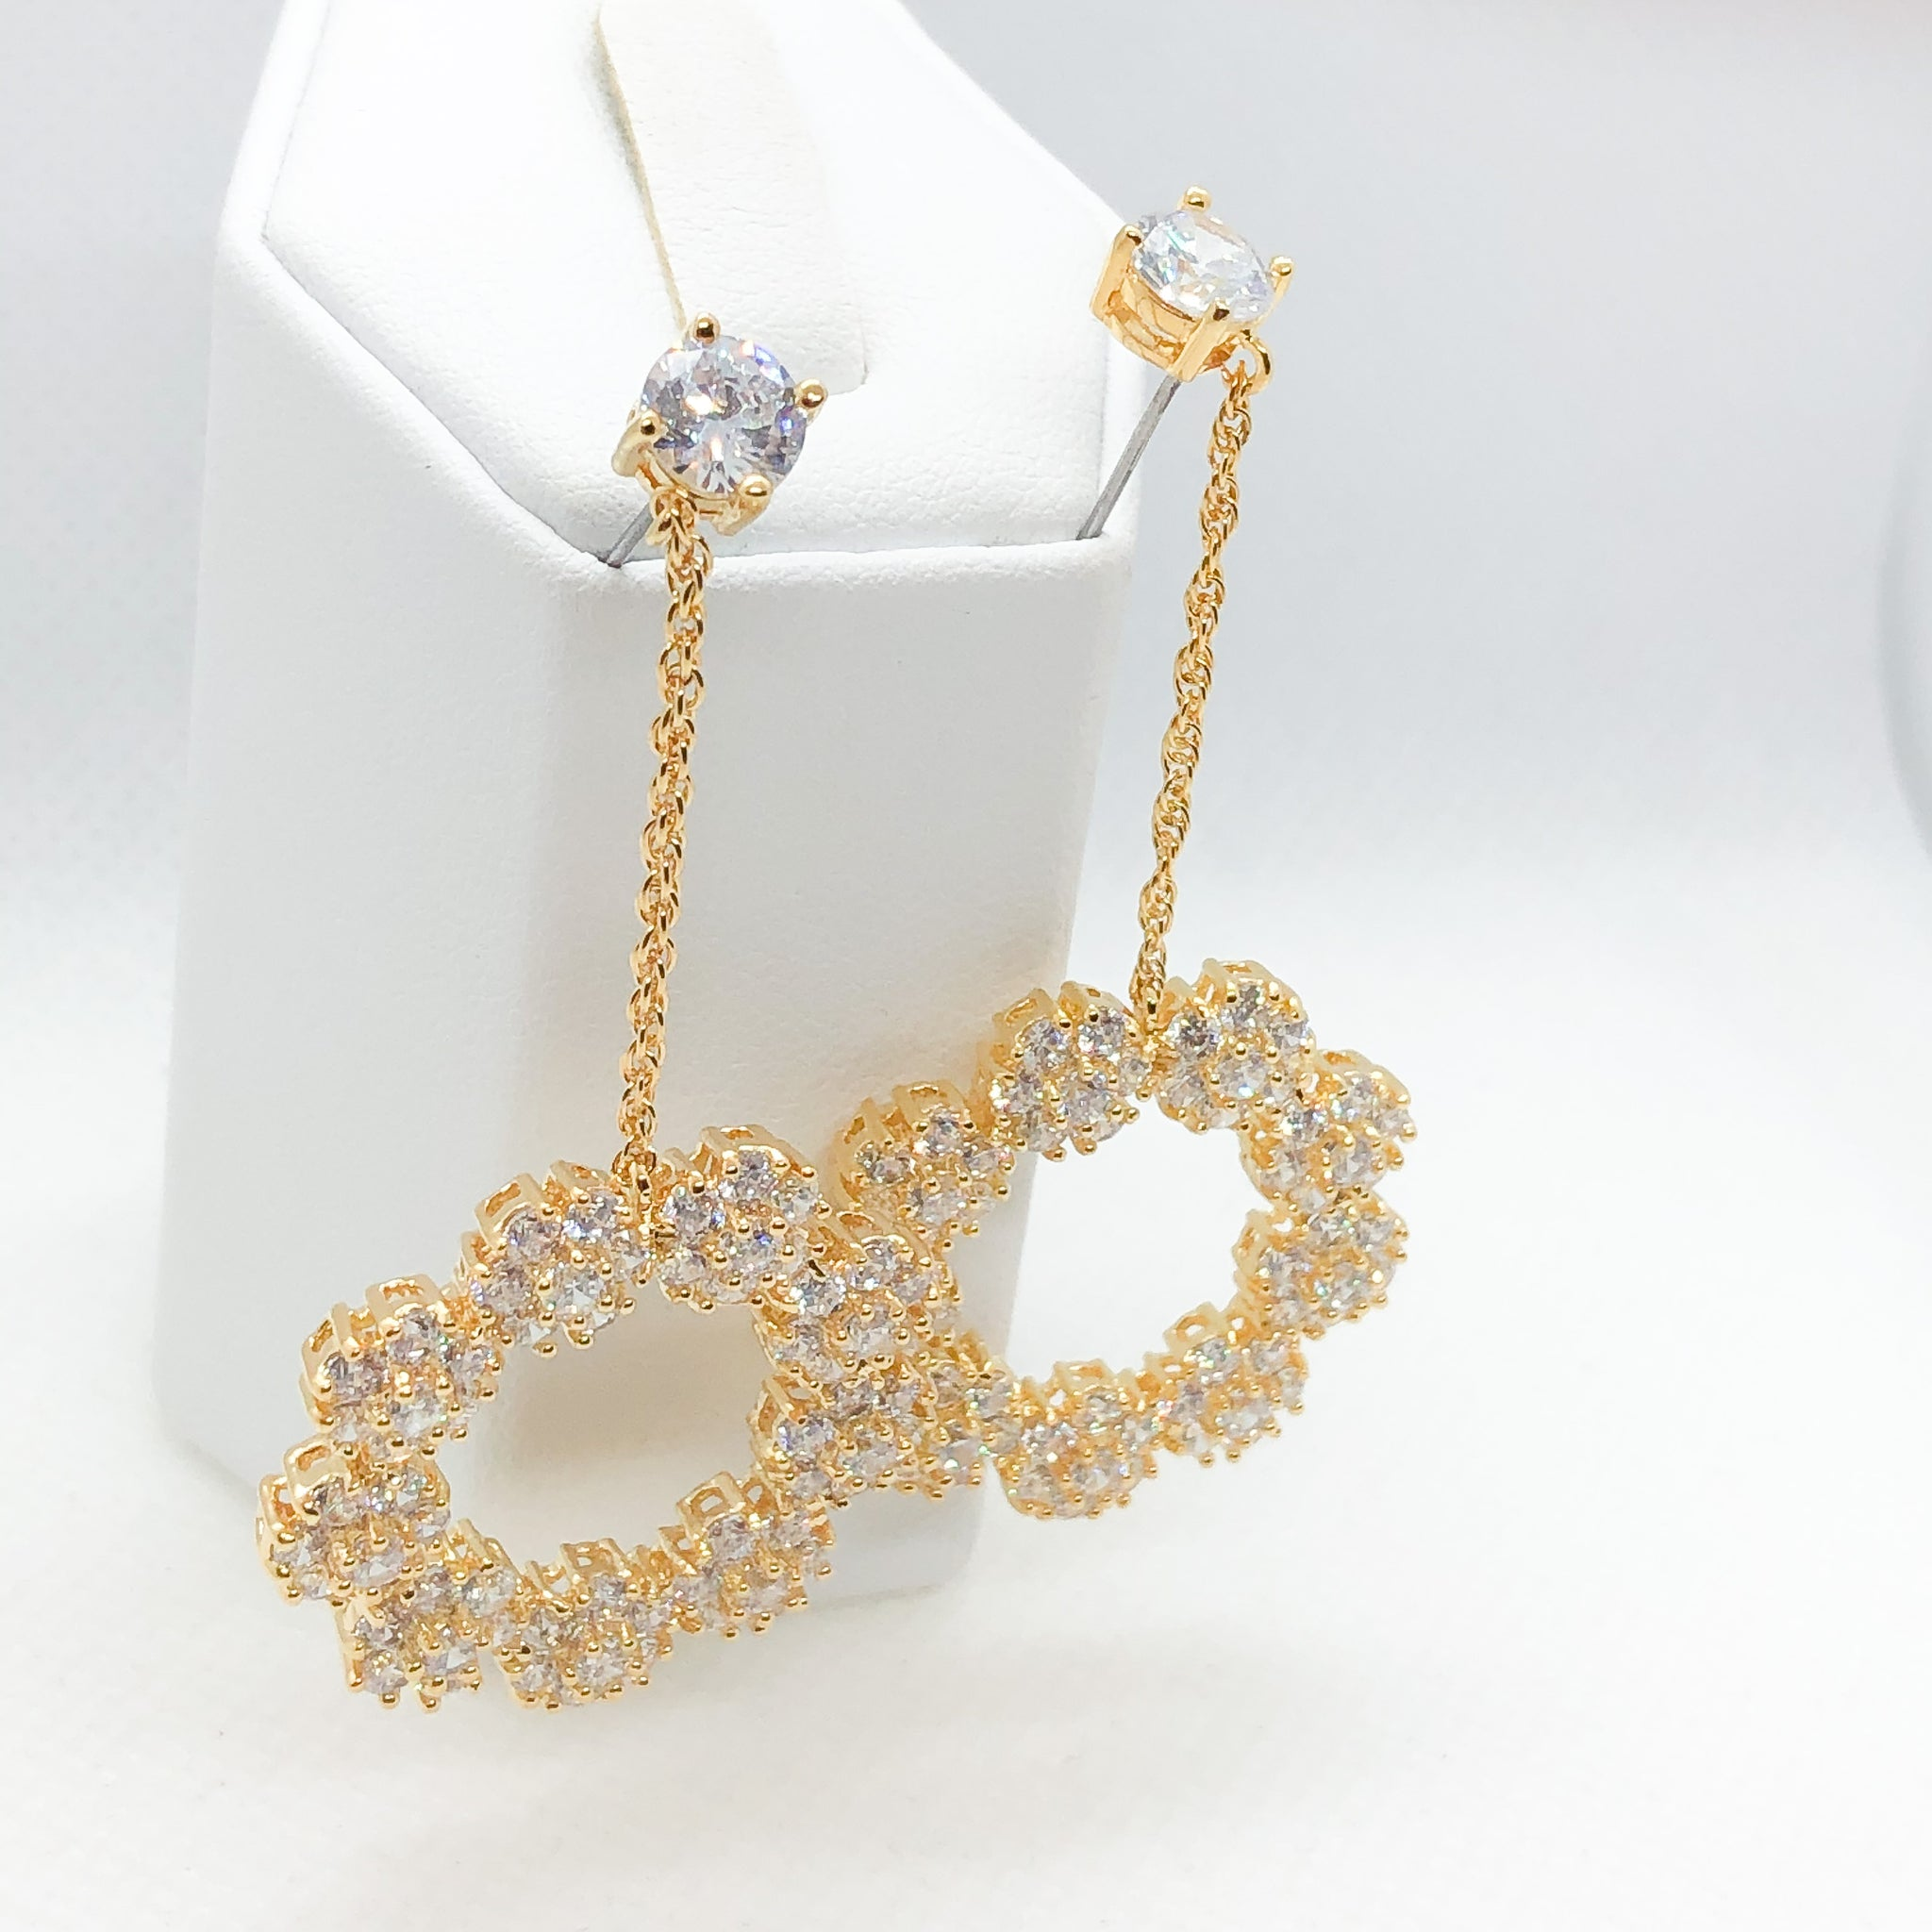 ID: E0803 Women Jewelry 18K Yellow Gold GF Shining Clear Round Stones Earrings Fashion Lady Drop Dangle